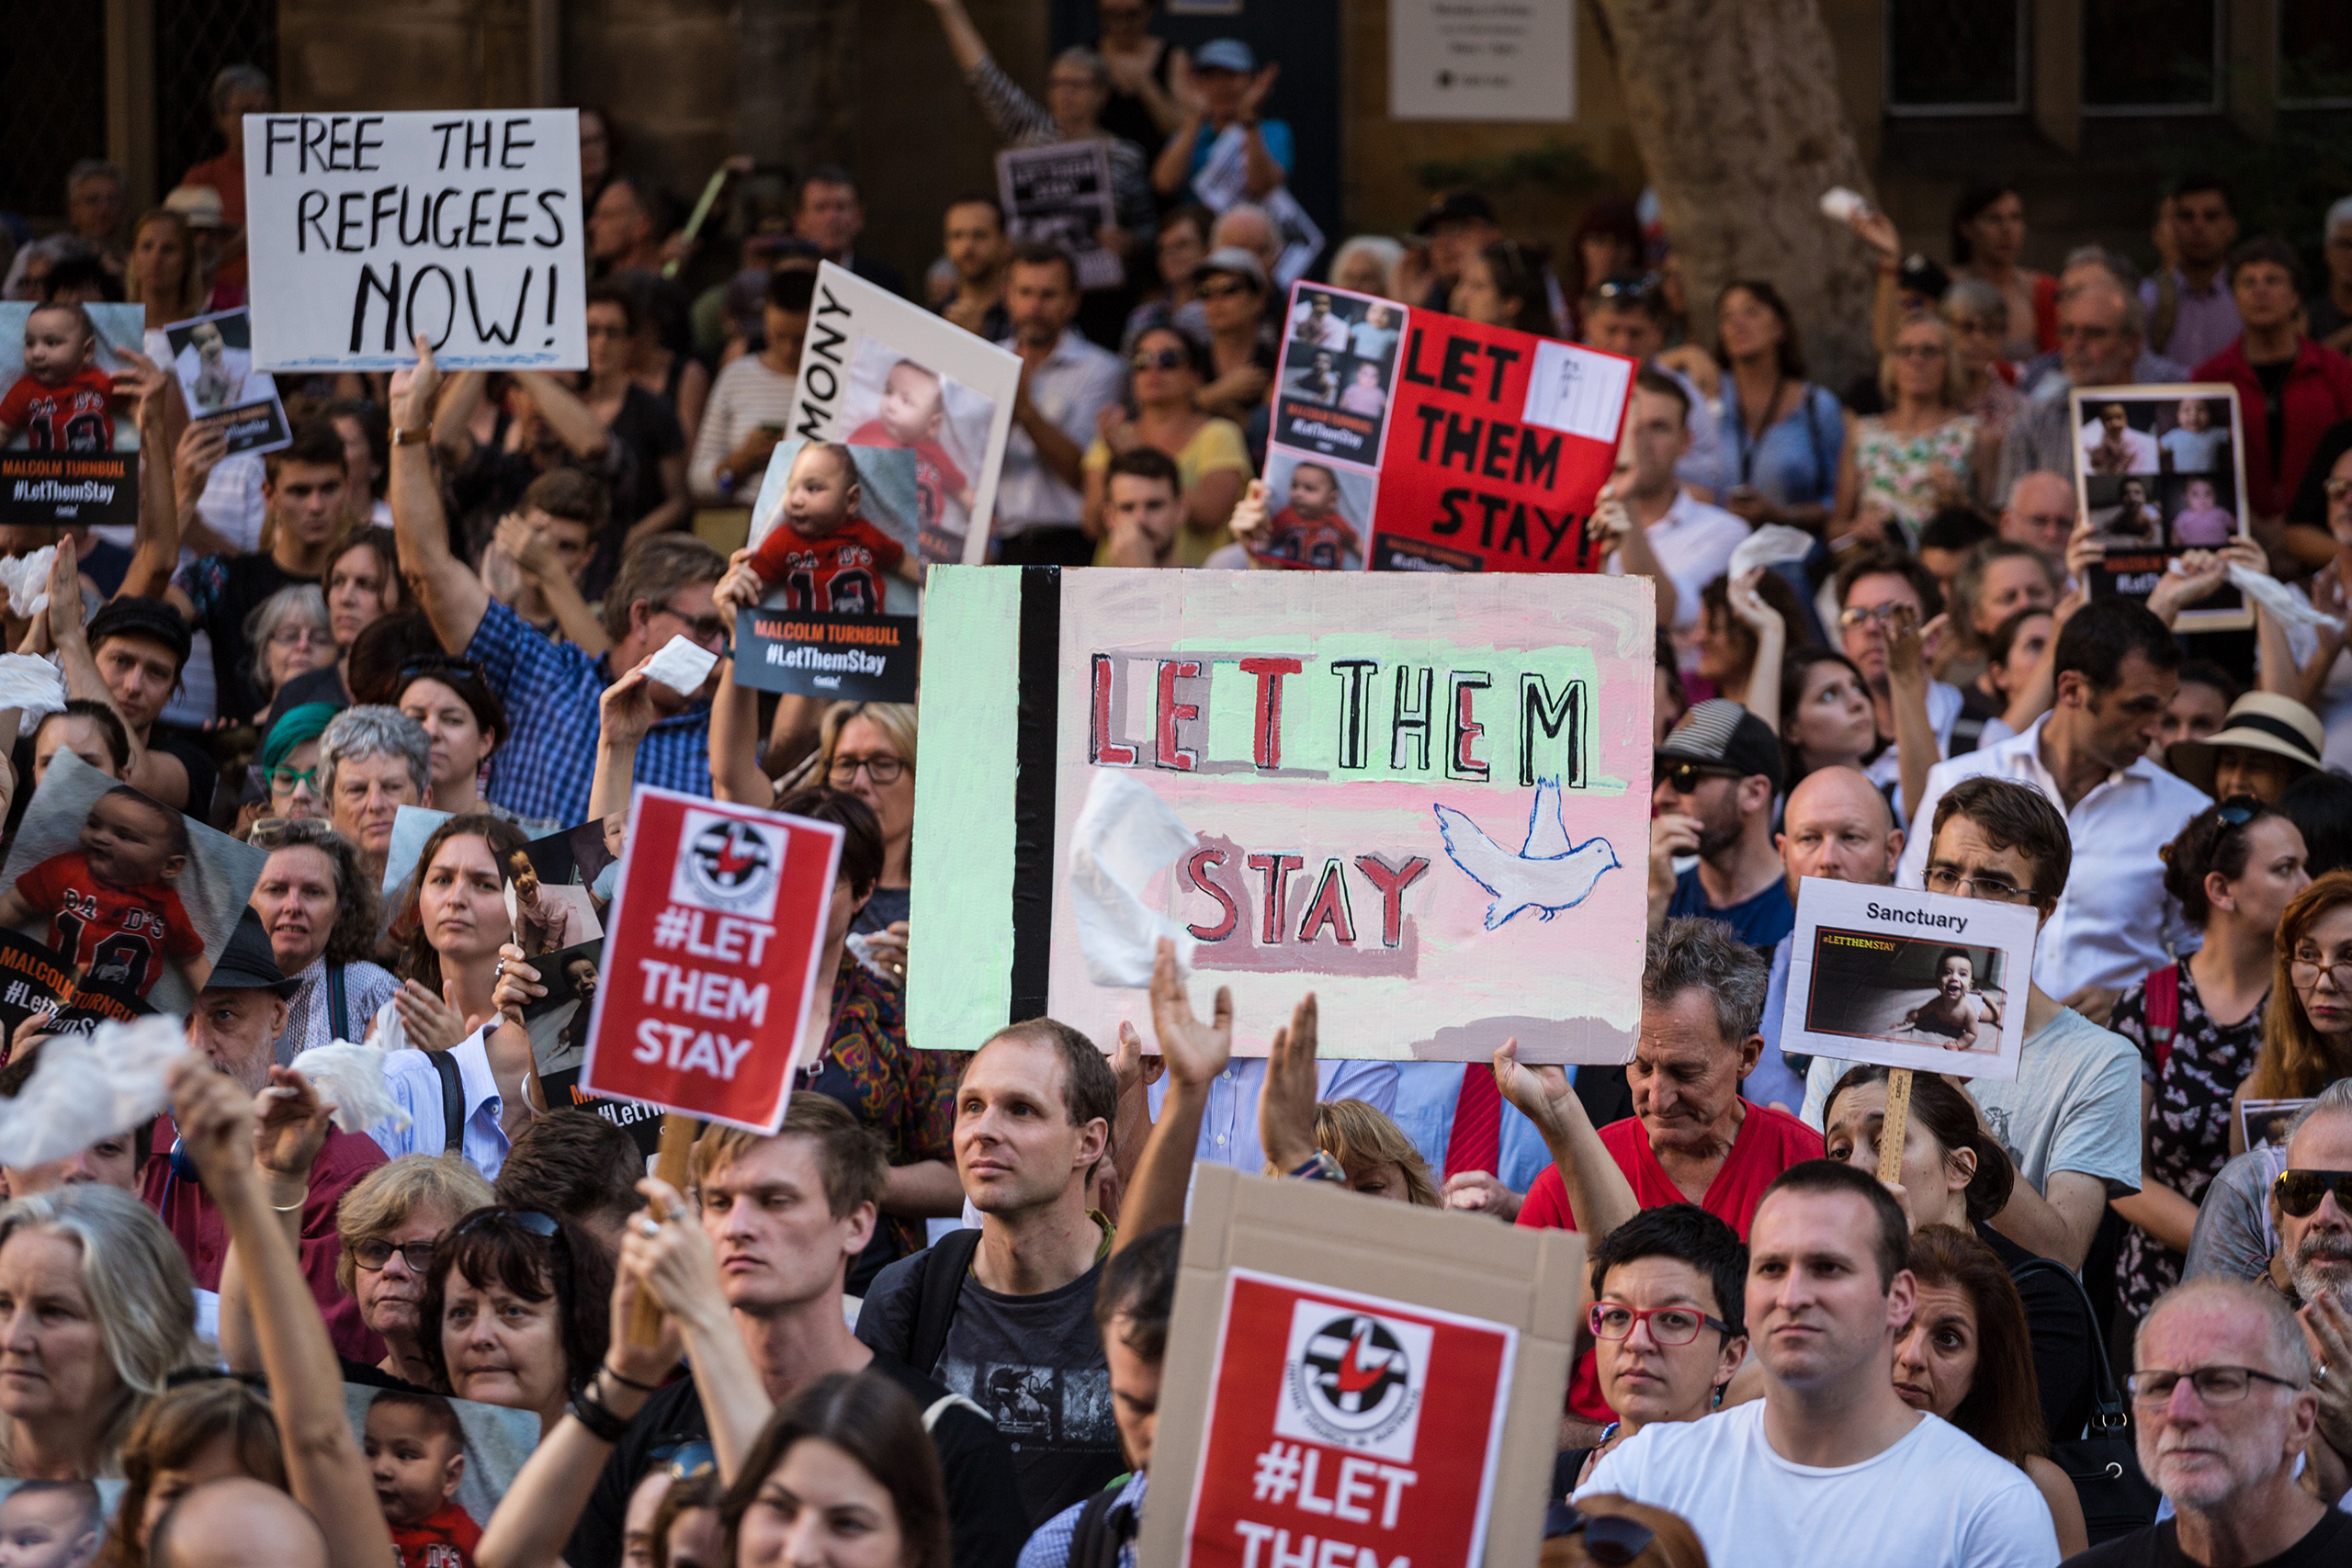 Thousands of protesters demonstrate at Town Hall Square in Sydney, Australia, on Feb. 8, 2016, against the offshore detention and detention of asylum seeker children to the offshore processing centers of Manus Island and Nauru.